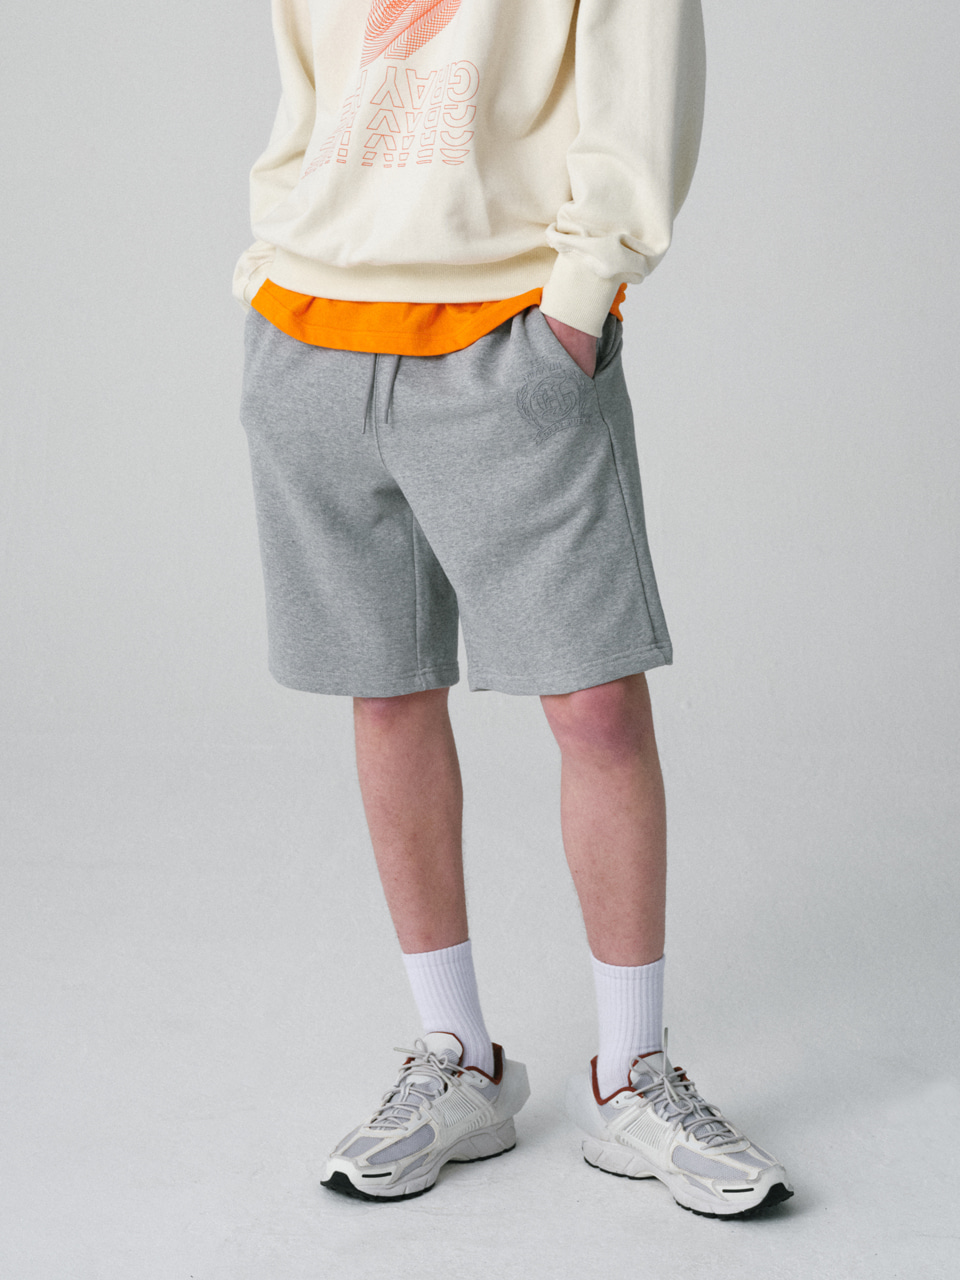 그레이휴EMBLEM SWEAT SHORTS medium gray